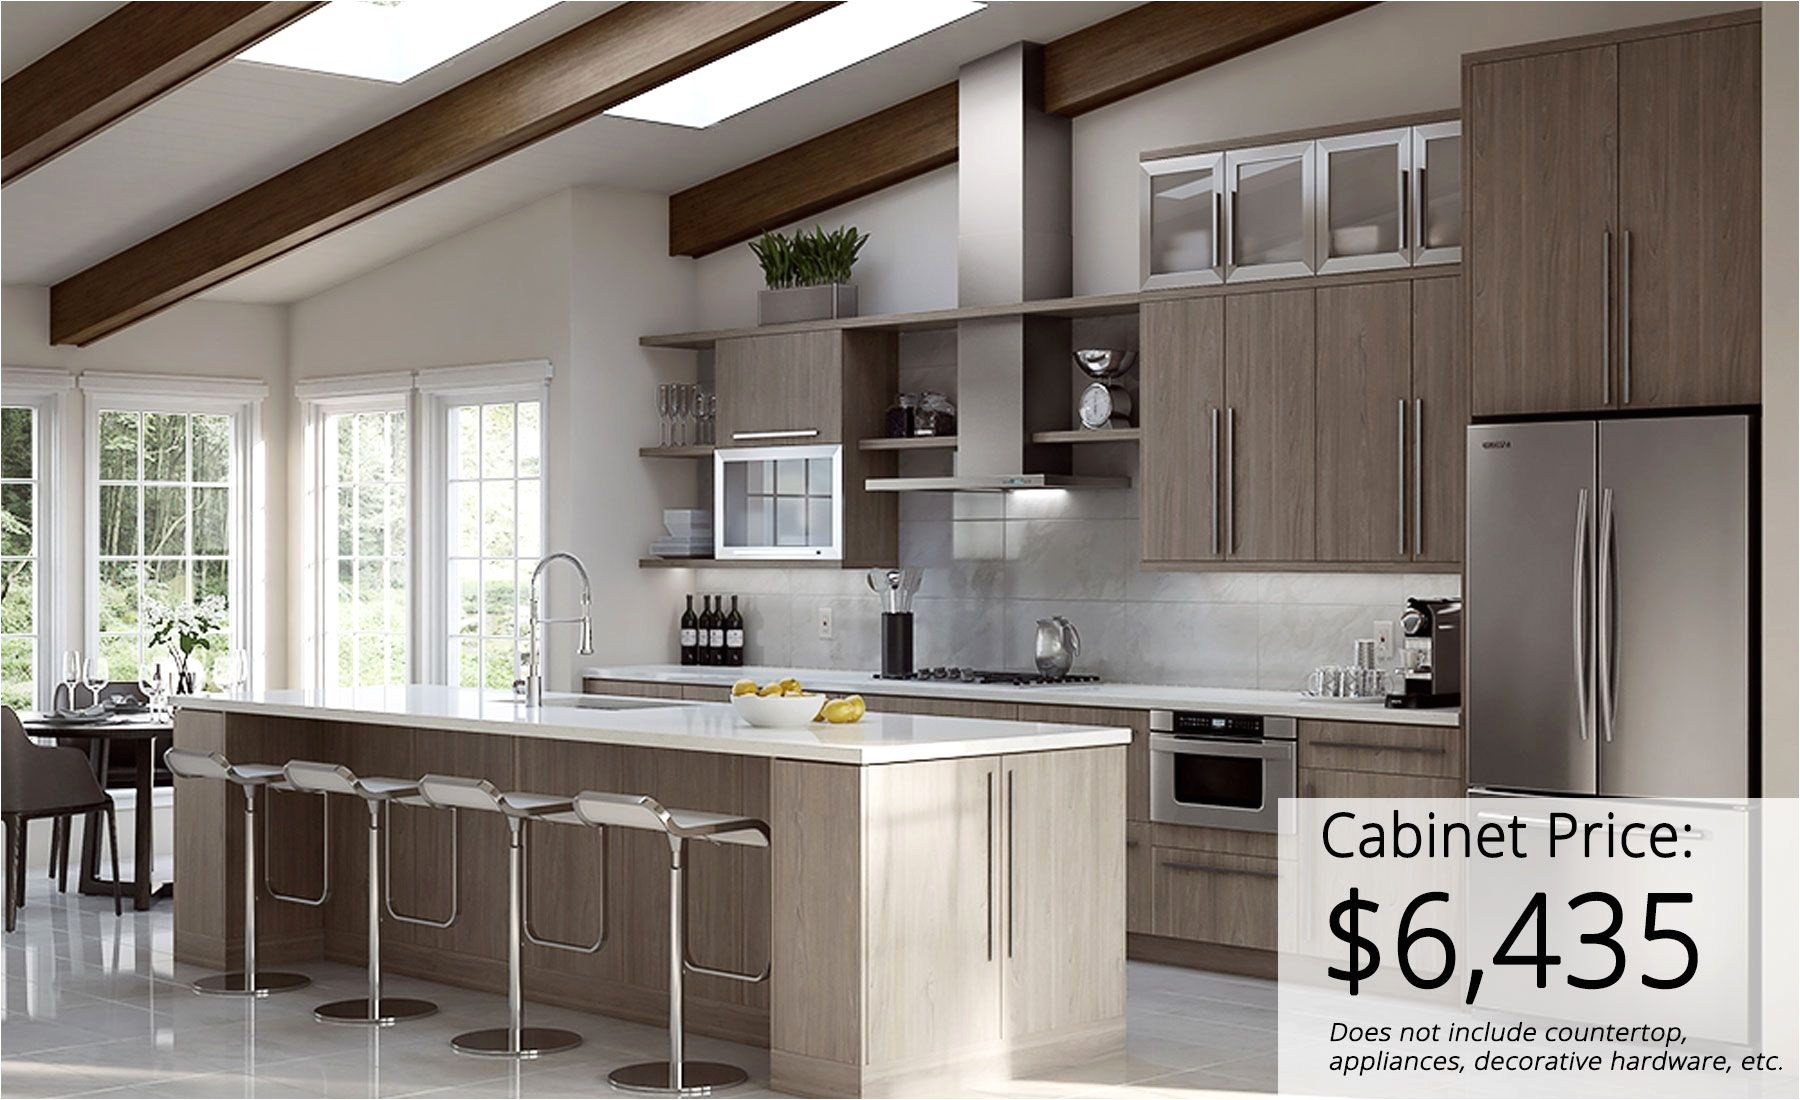 kitchen cabinets home depot sale fresh hampton bay designer series from home depot hampton bay kitchen cabinets image source weixinor com